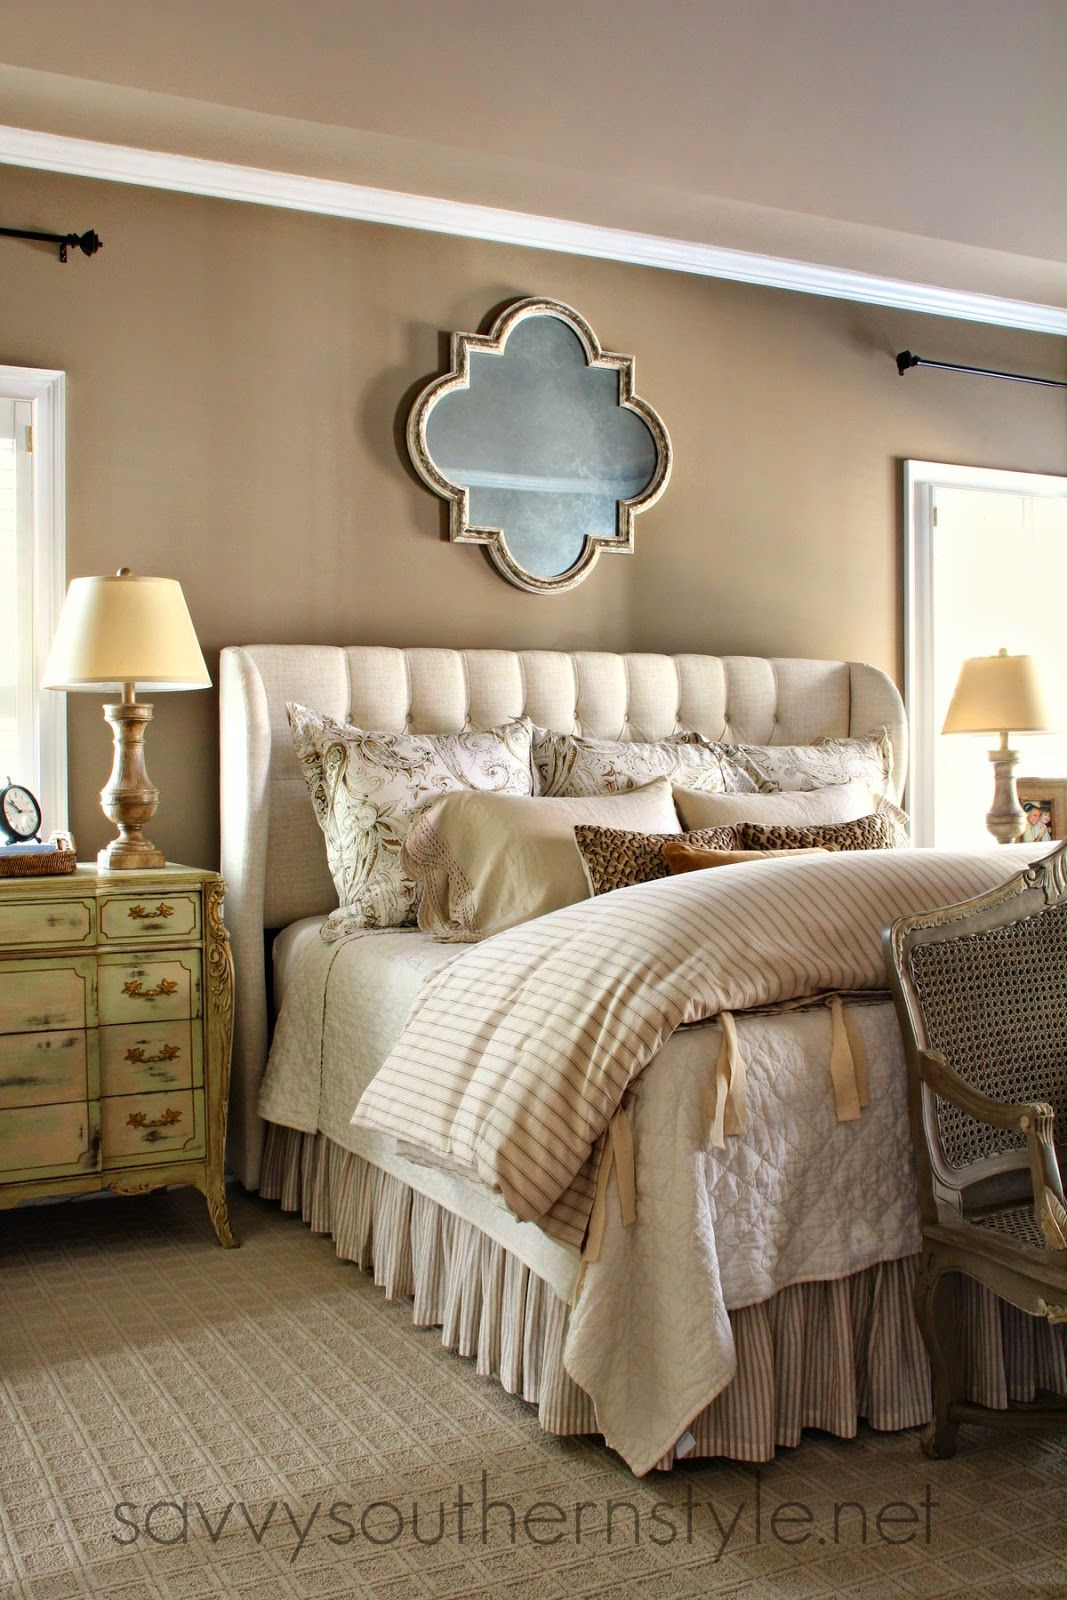 Delicieux Master Reveal With King Size Bed, Upholstered Headboard, Pottery Barn  Bedding, Ballard Designs Bedding, French Bench.